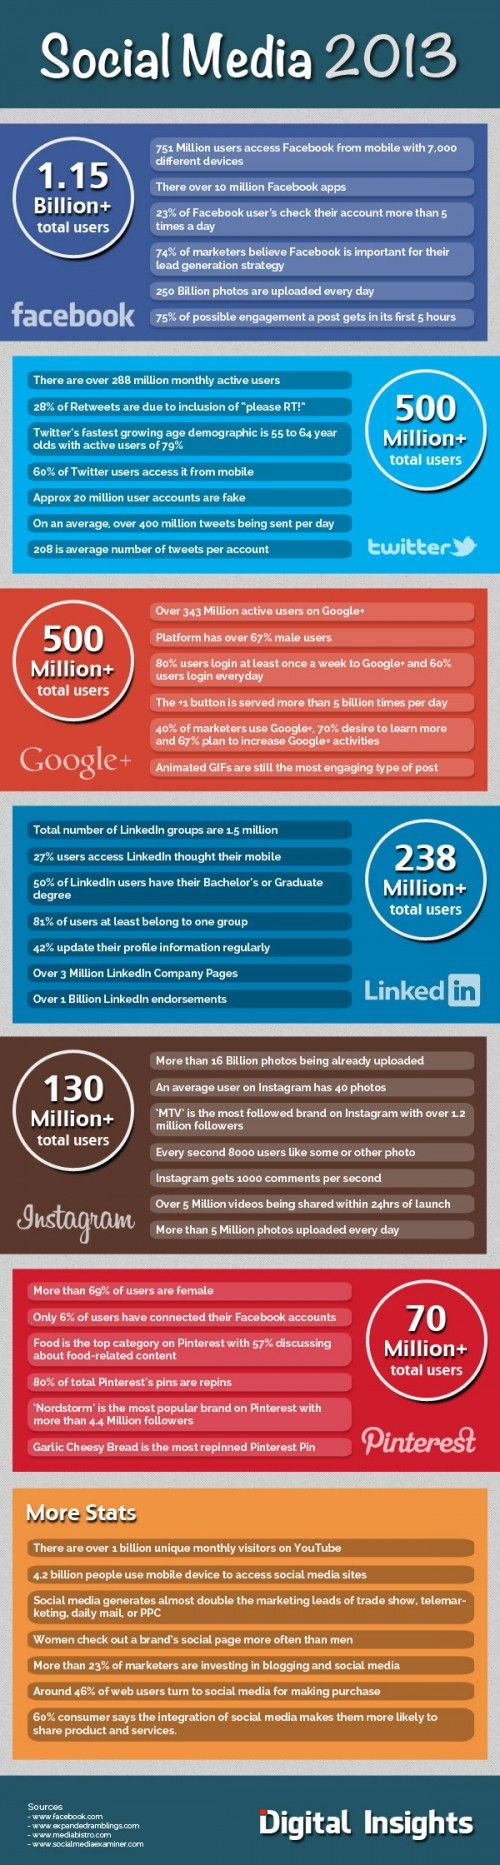 45 Amazing Social Media Facts & Figures (Infographic) - See more at: http://www.viralblog.com/